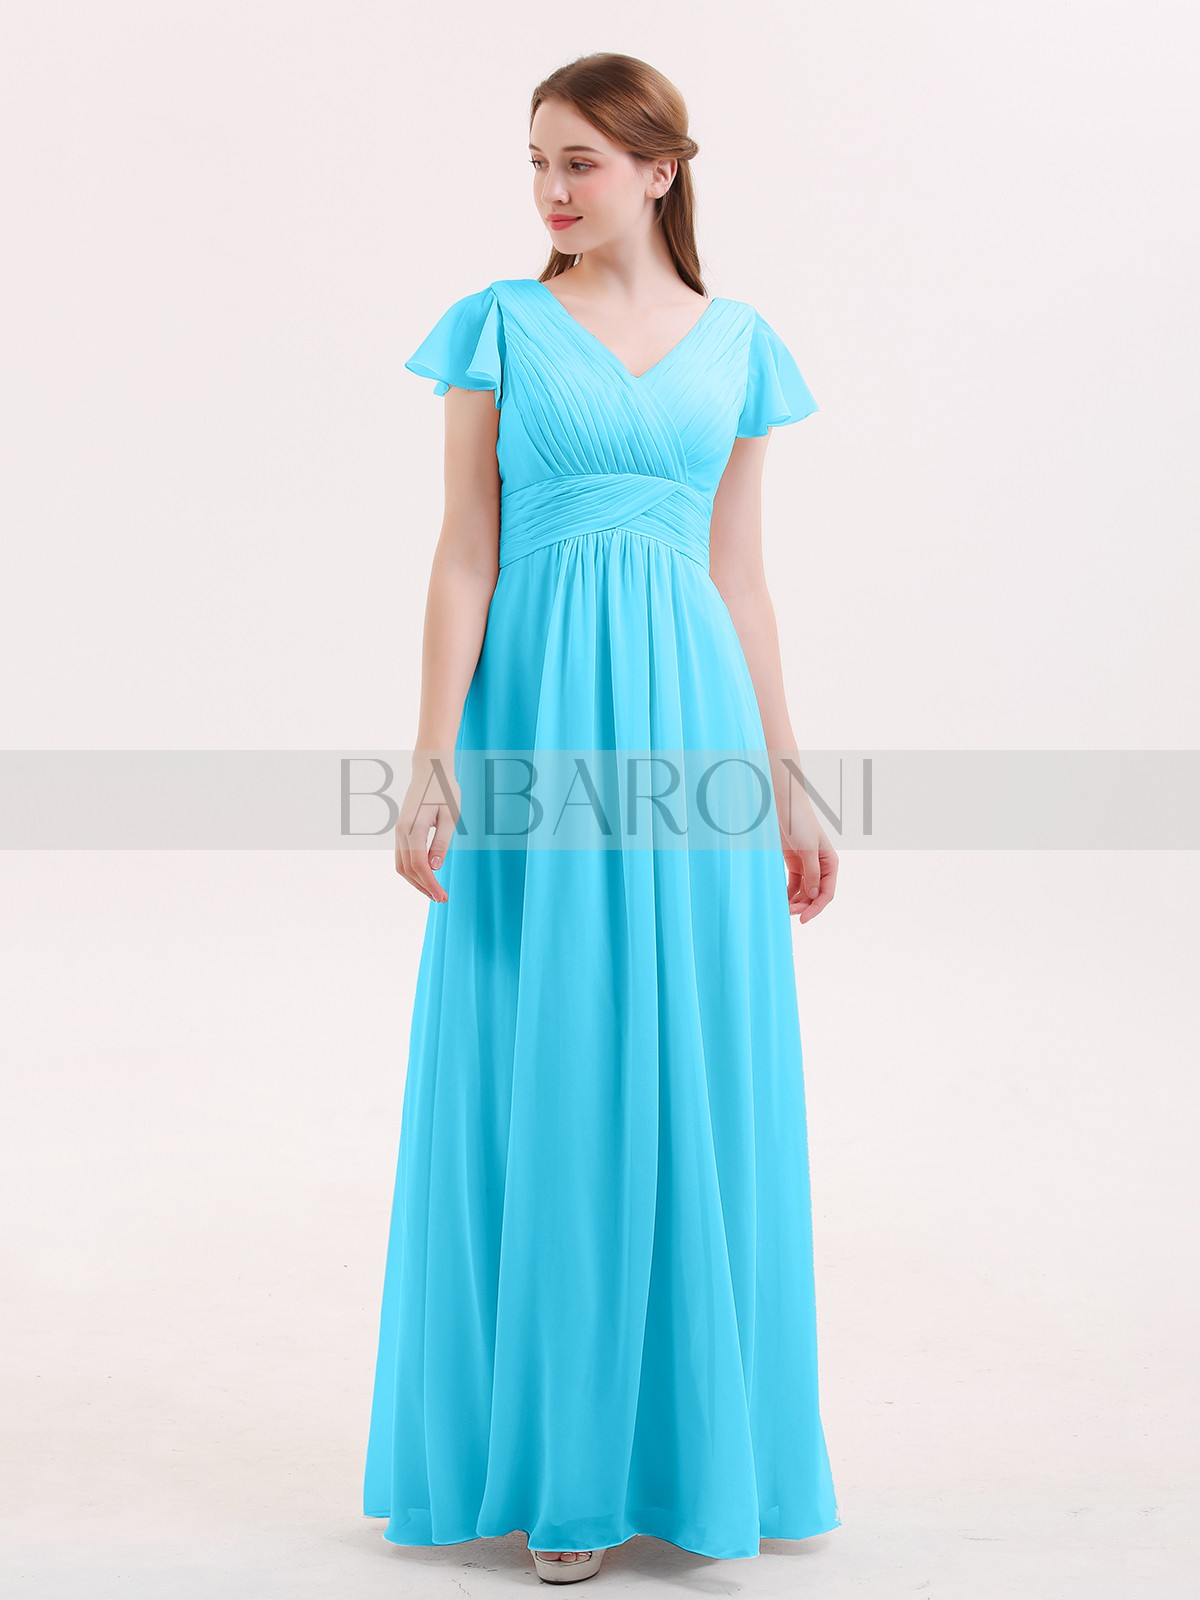 Home Bridesmaid Dresses Babaroni Jacqueline A Line Chiffon Dusty Sage Zipper Ruched Pleated Floor Length V Neck Loading Zoom